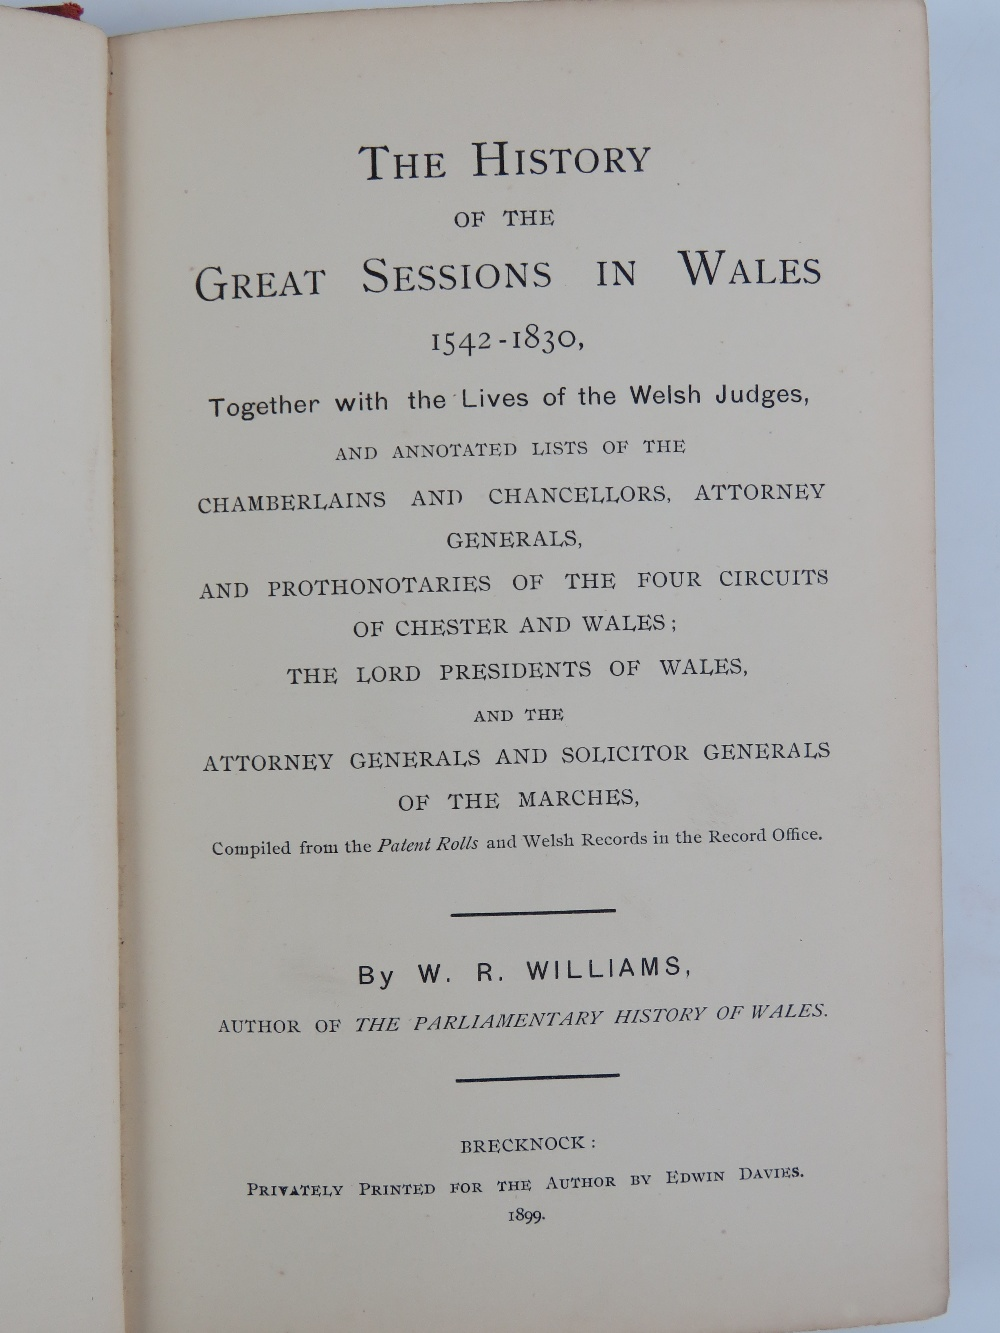 Lot 734 - A quantity of law books including 'The W